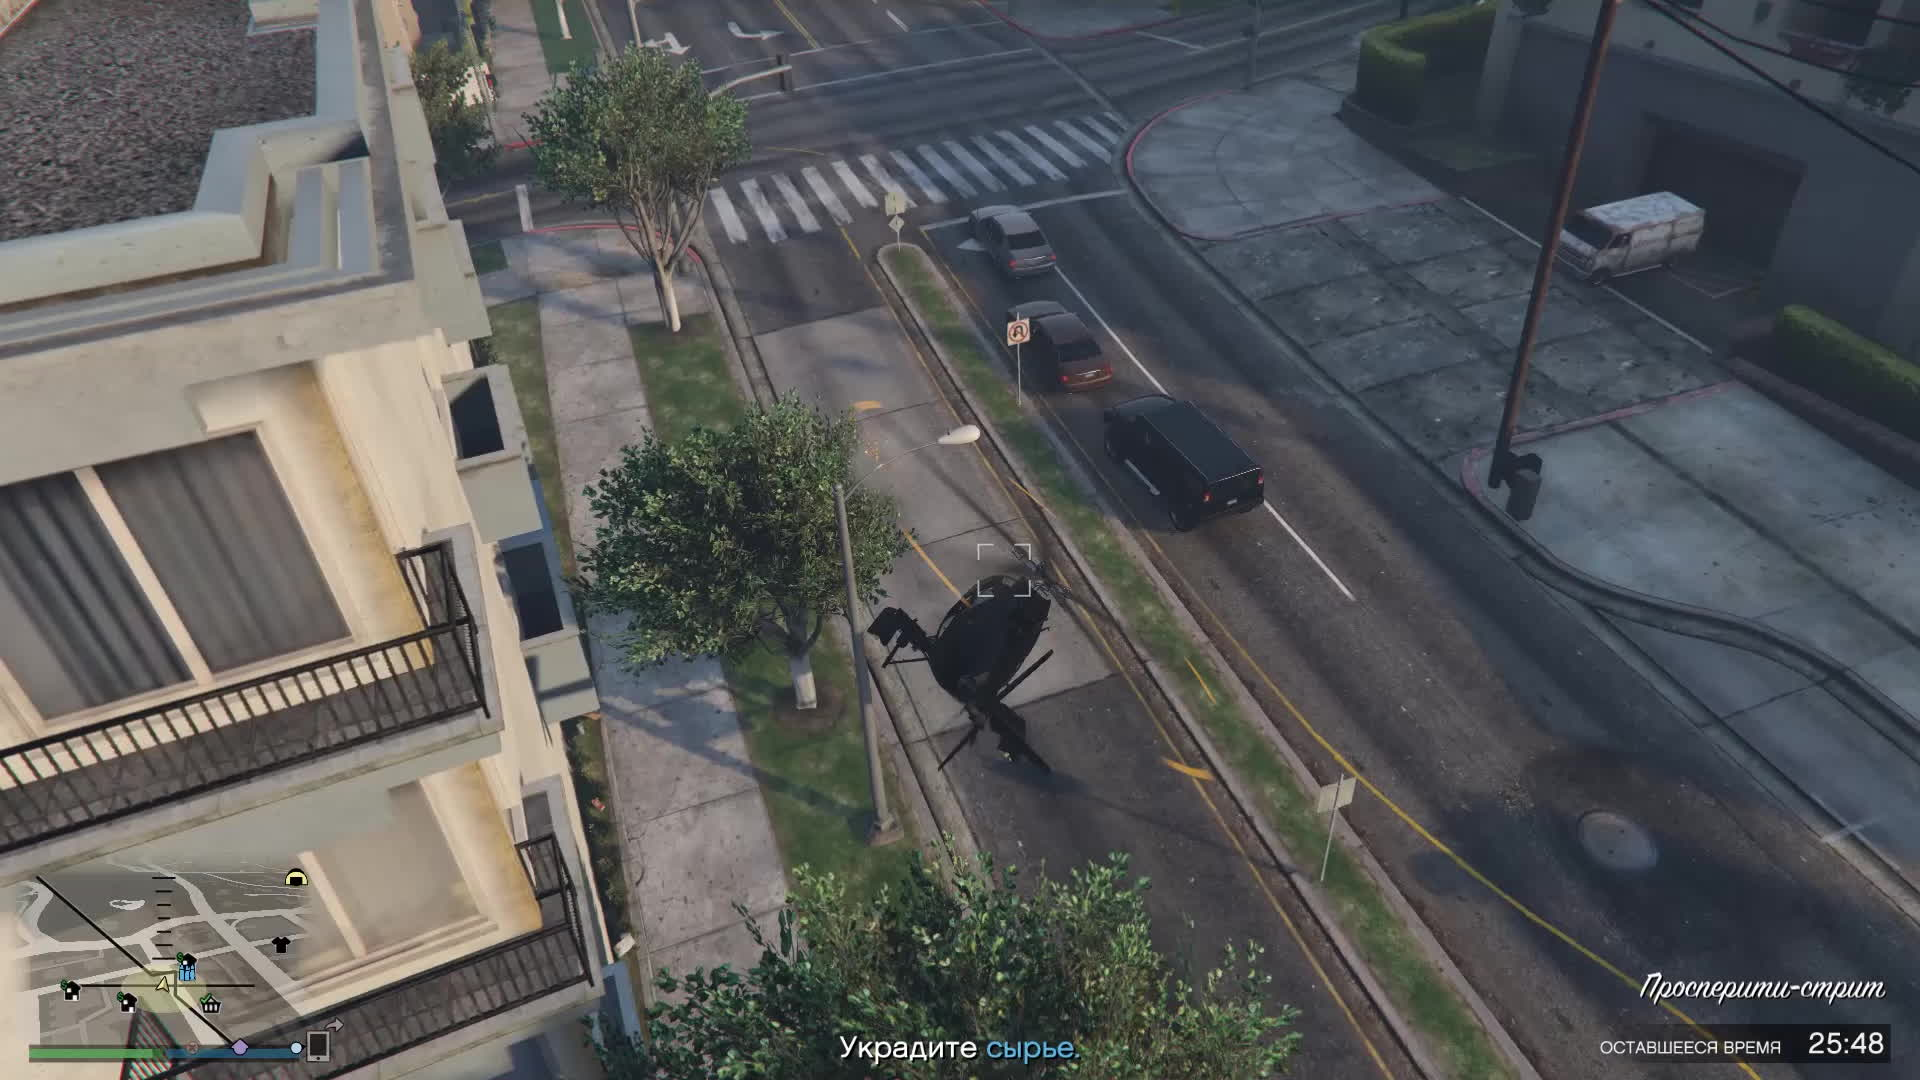 gta, what was that GIFs